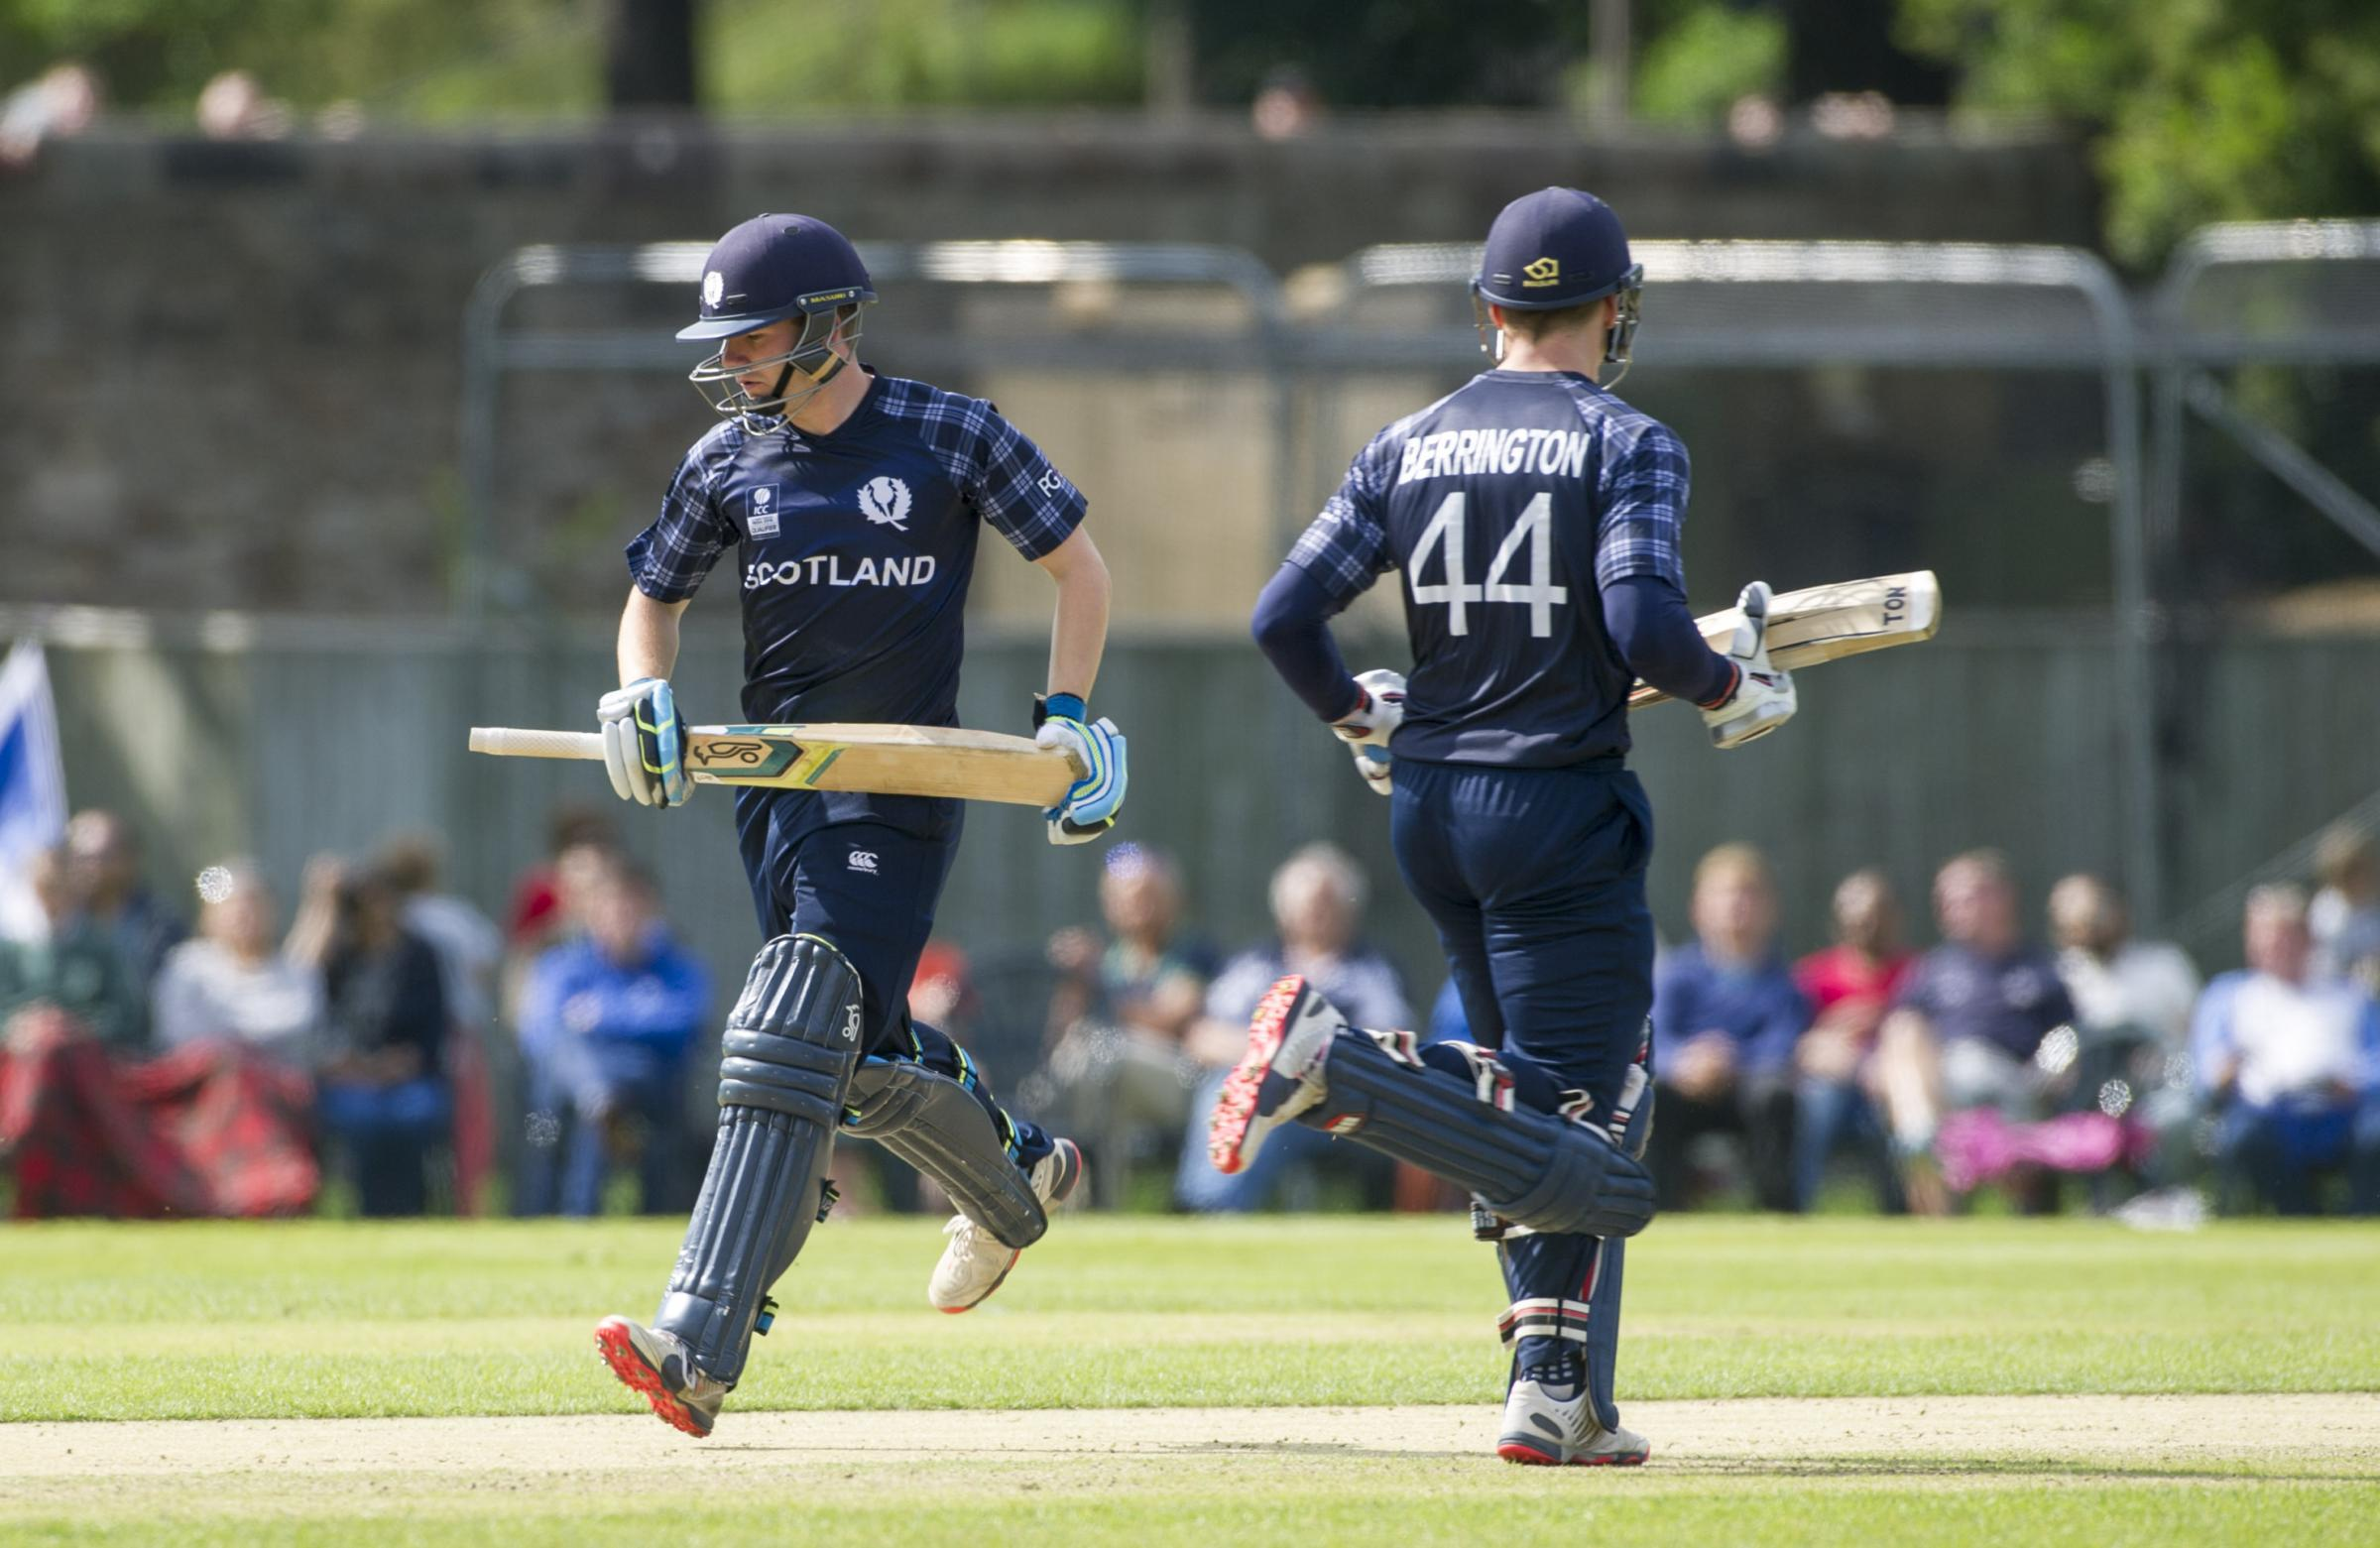 Scotland's Matthew Cross and Richie Berrington shared a 51-run partnership to bring up the win. Picture: Donald MacLeod